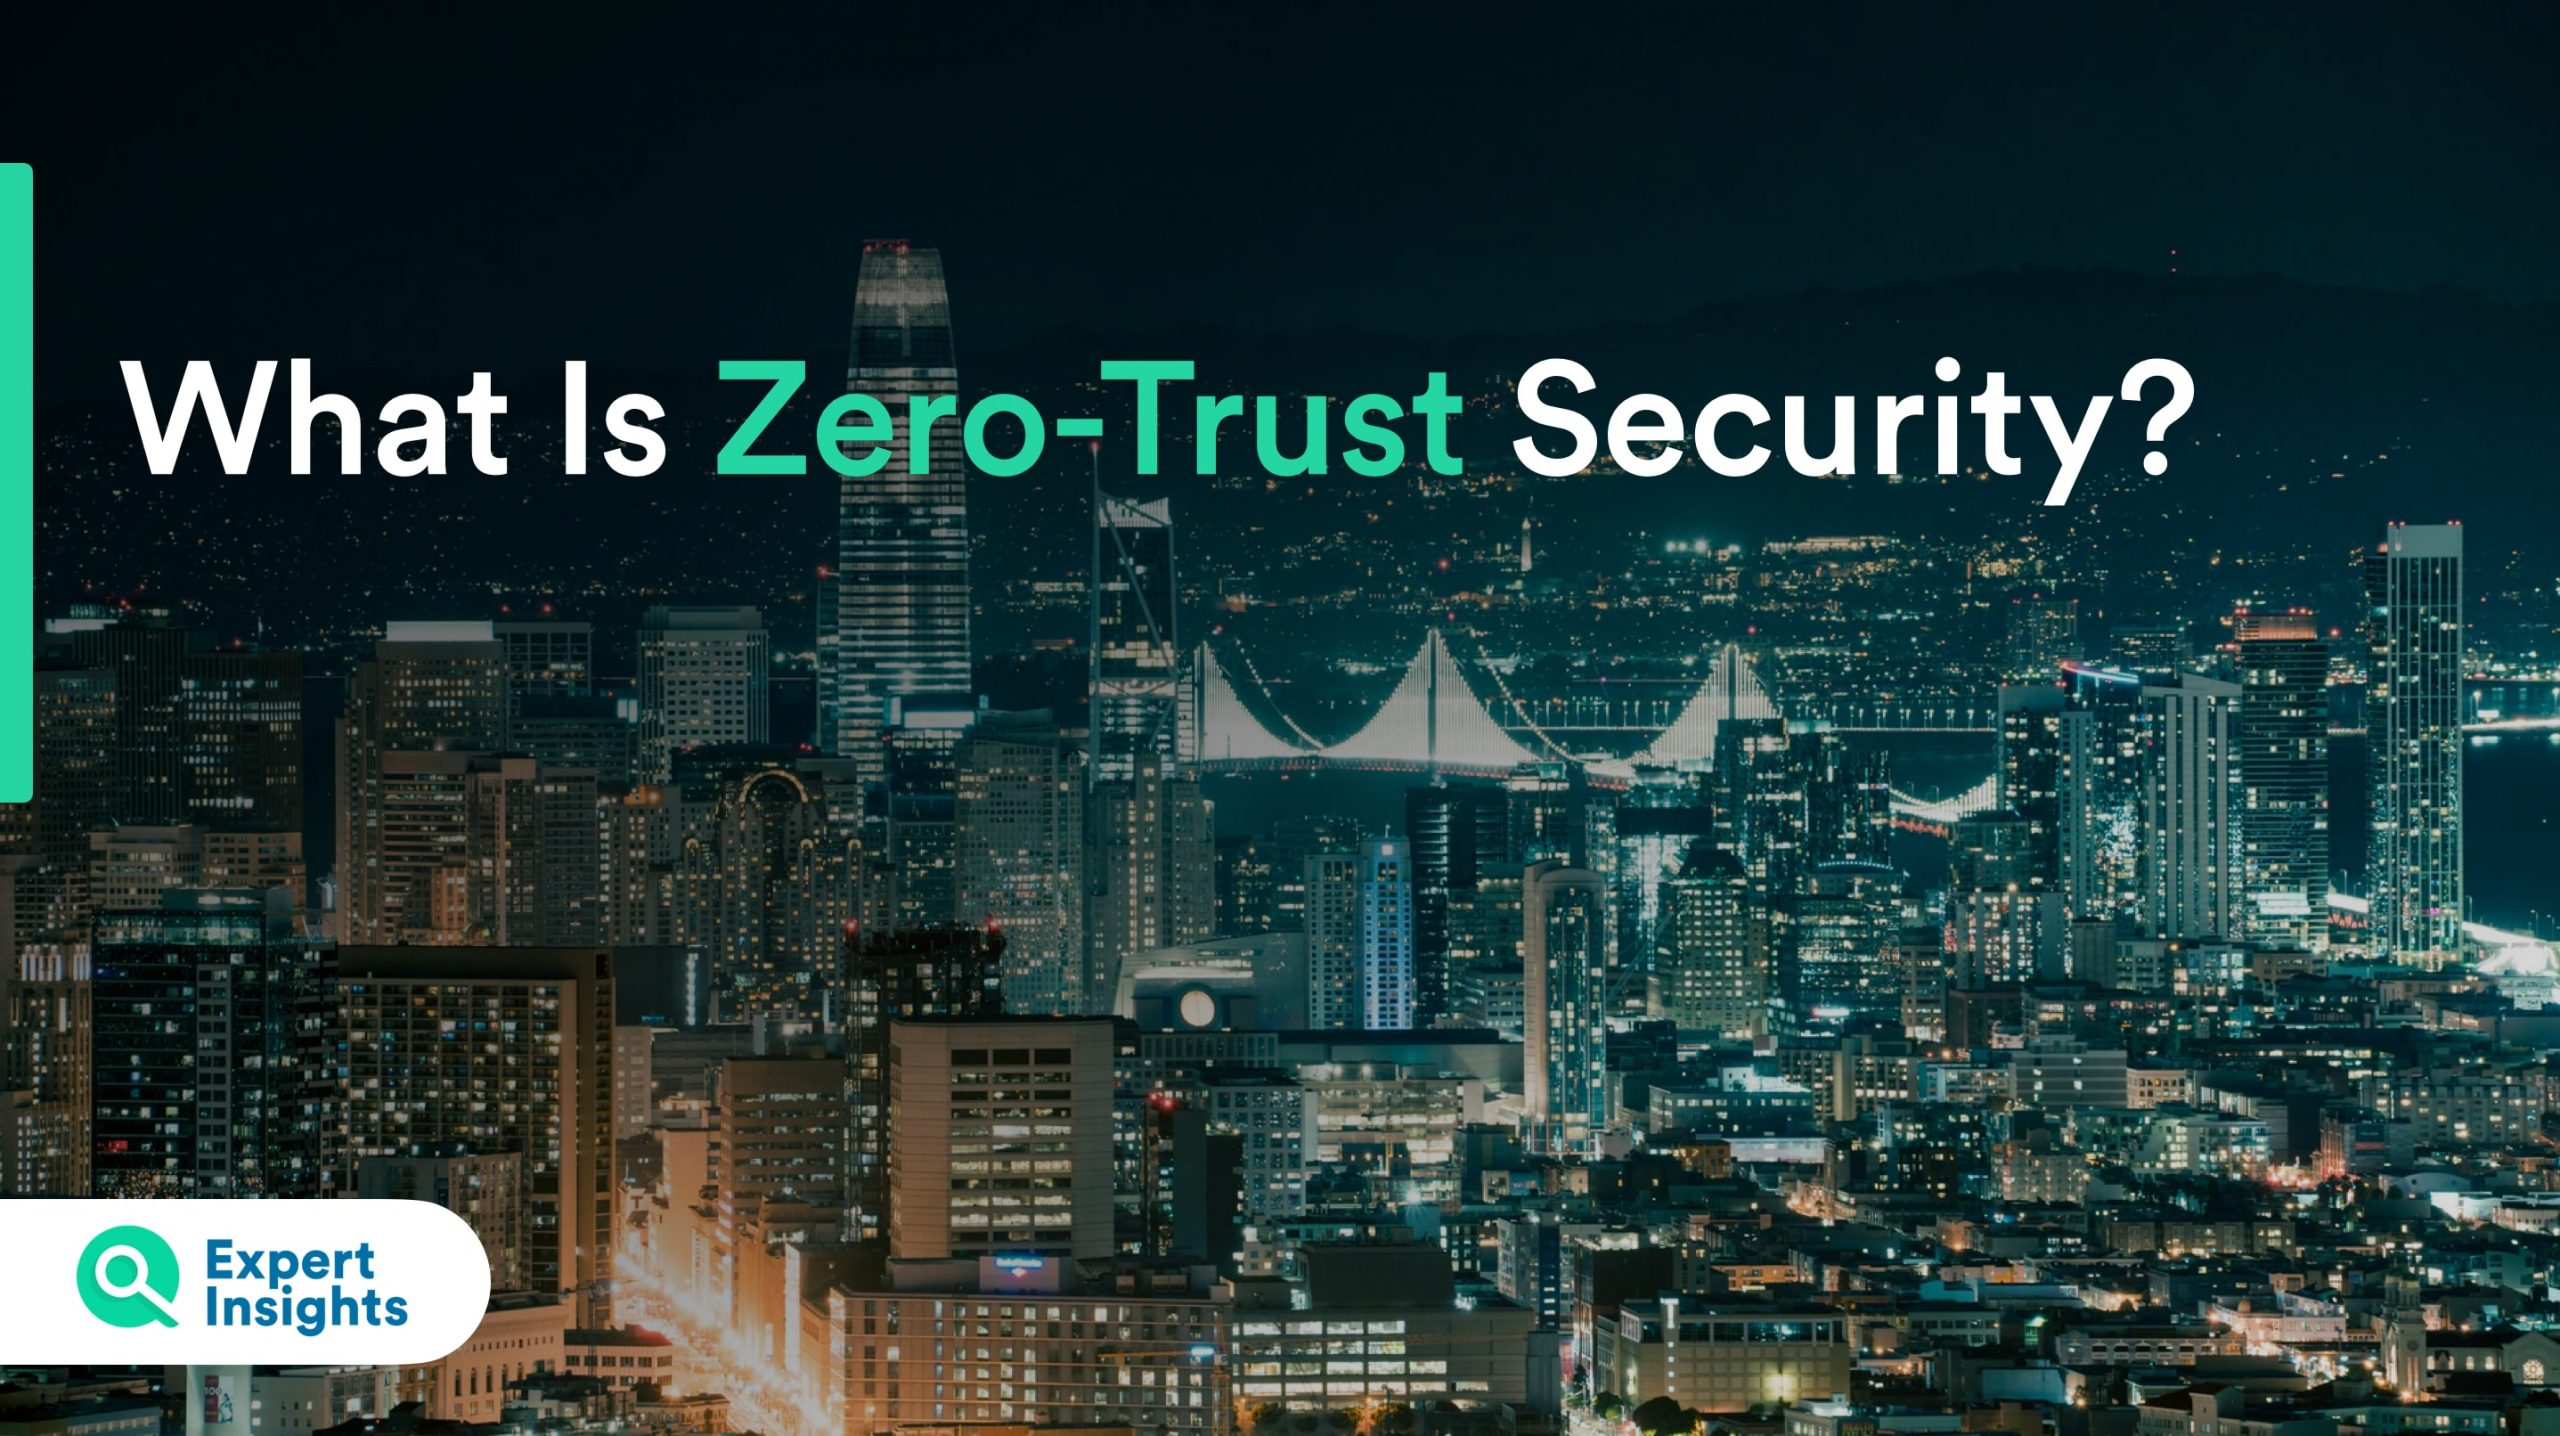 What is Zero-Trust Security?